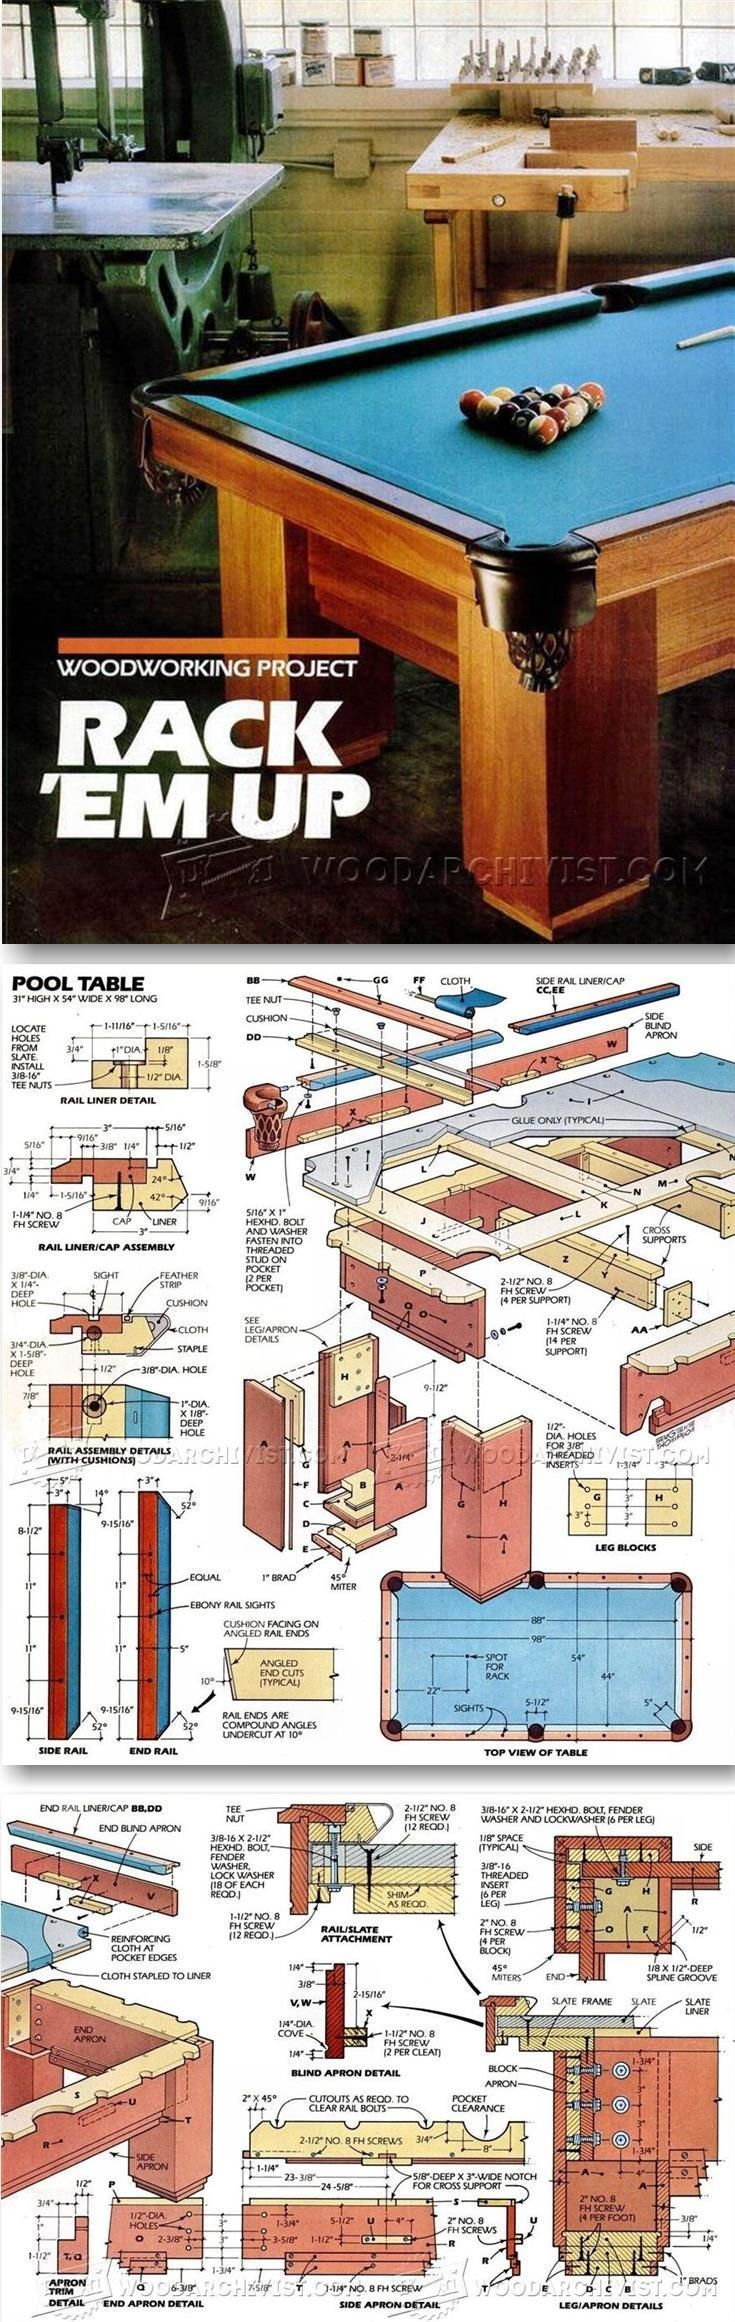 Pool Table Plans - Woodworking Plans and Projects | WoodArchivist.com